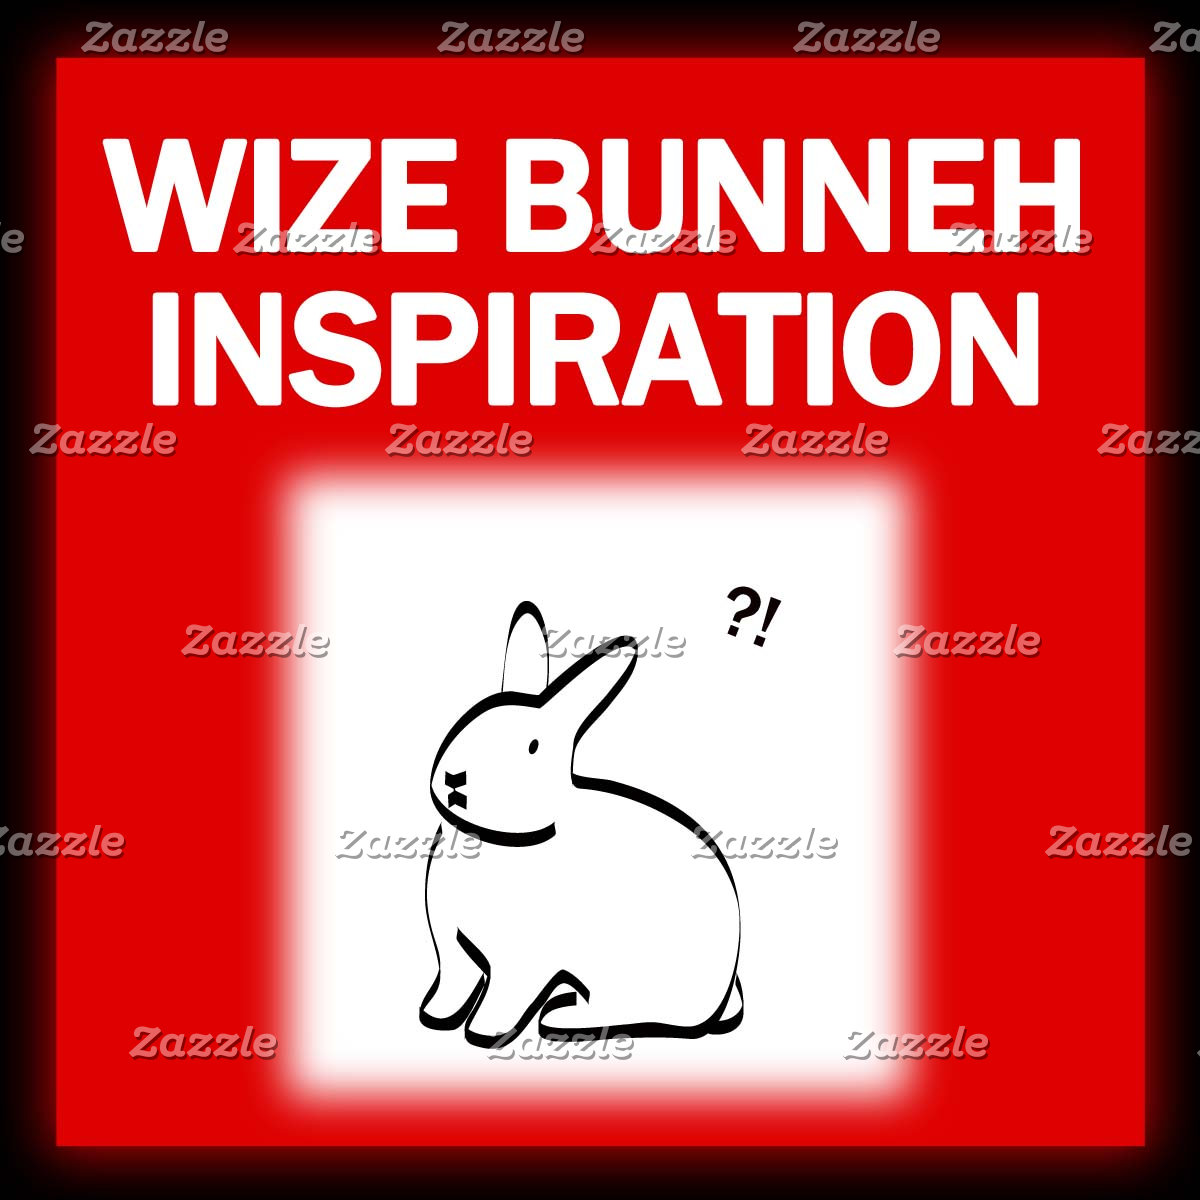 WISE BUNNEH INSPIRATION